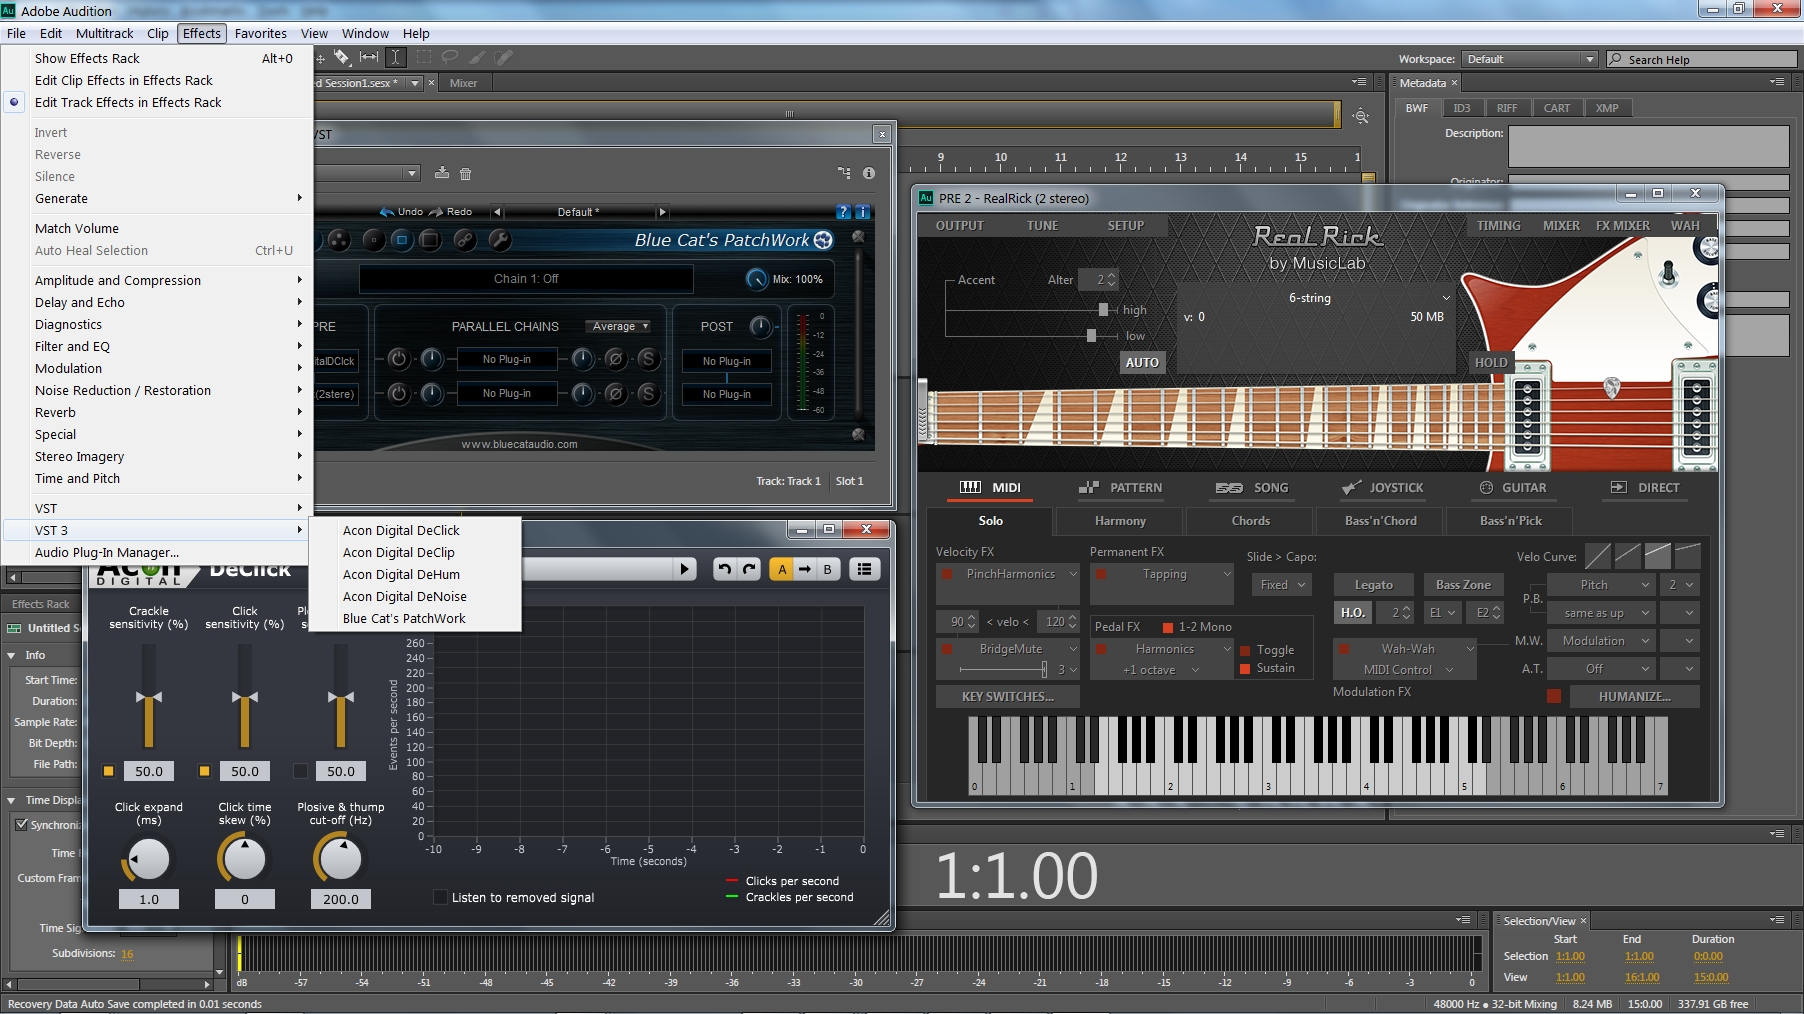 but does audition use correctly the vst3 plugins? | Adobe